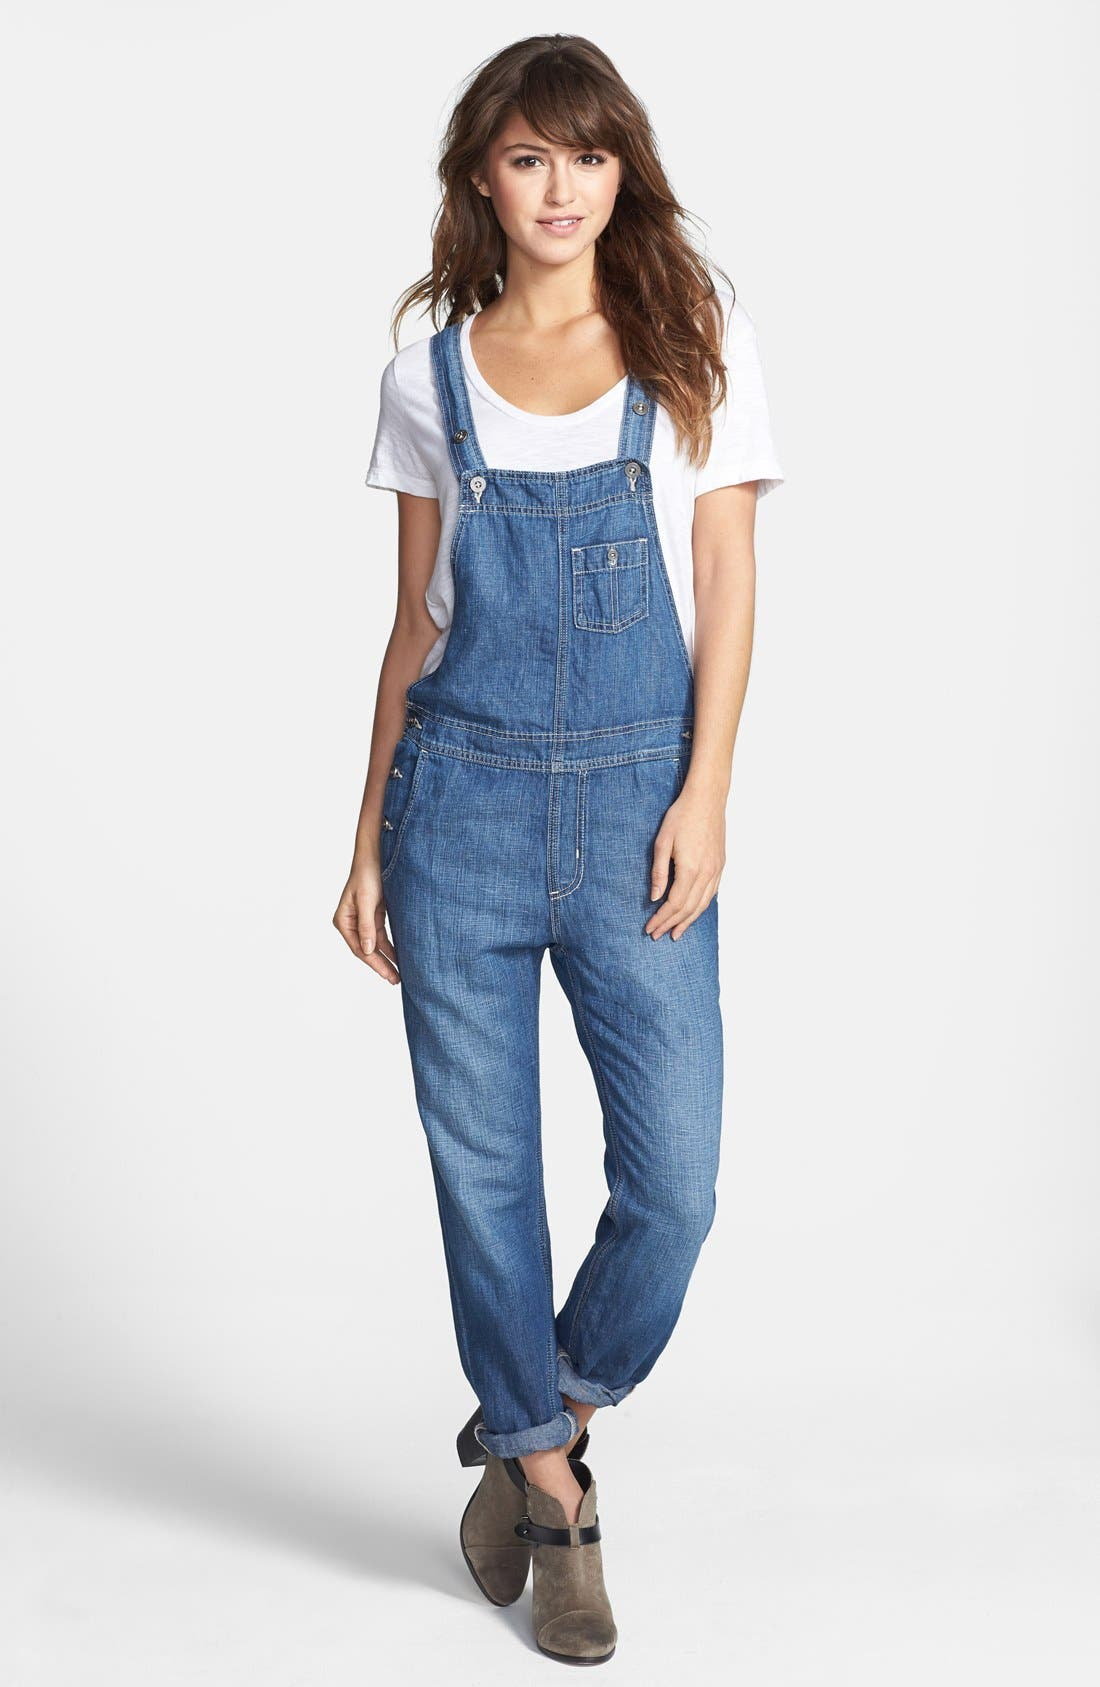 Alternate Image 1 Selected - Big Star 'Heather' Denim Overalls (Junction) (Regular & Petite)